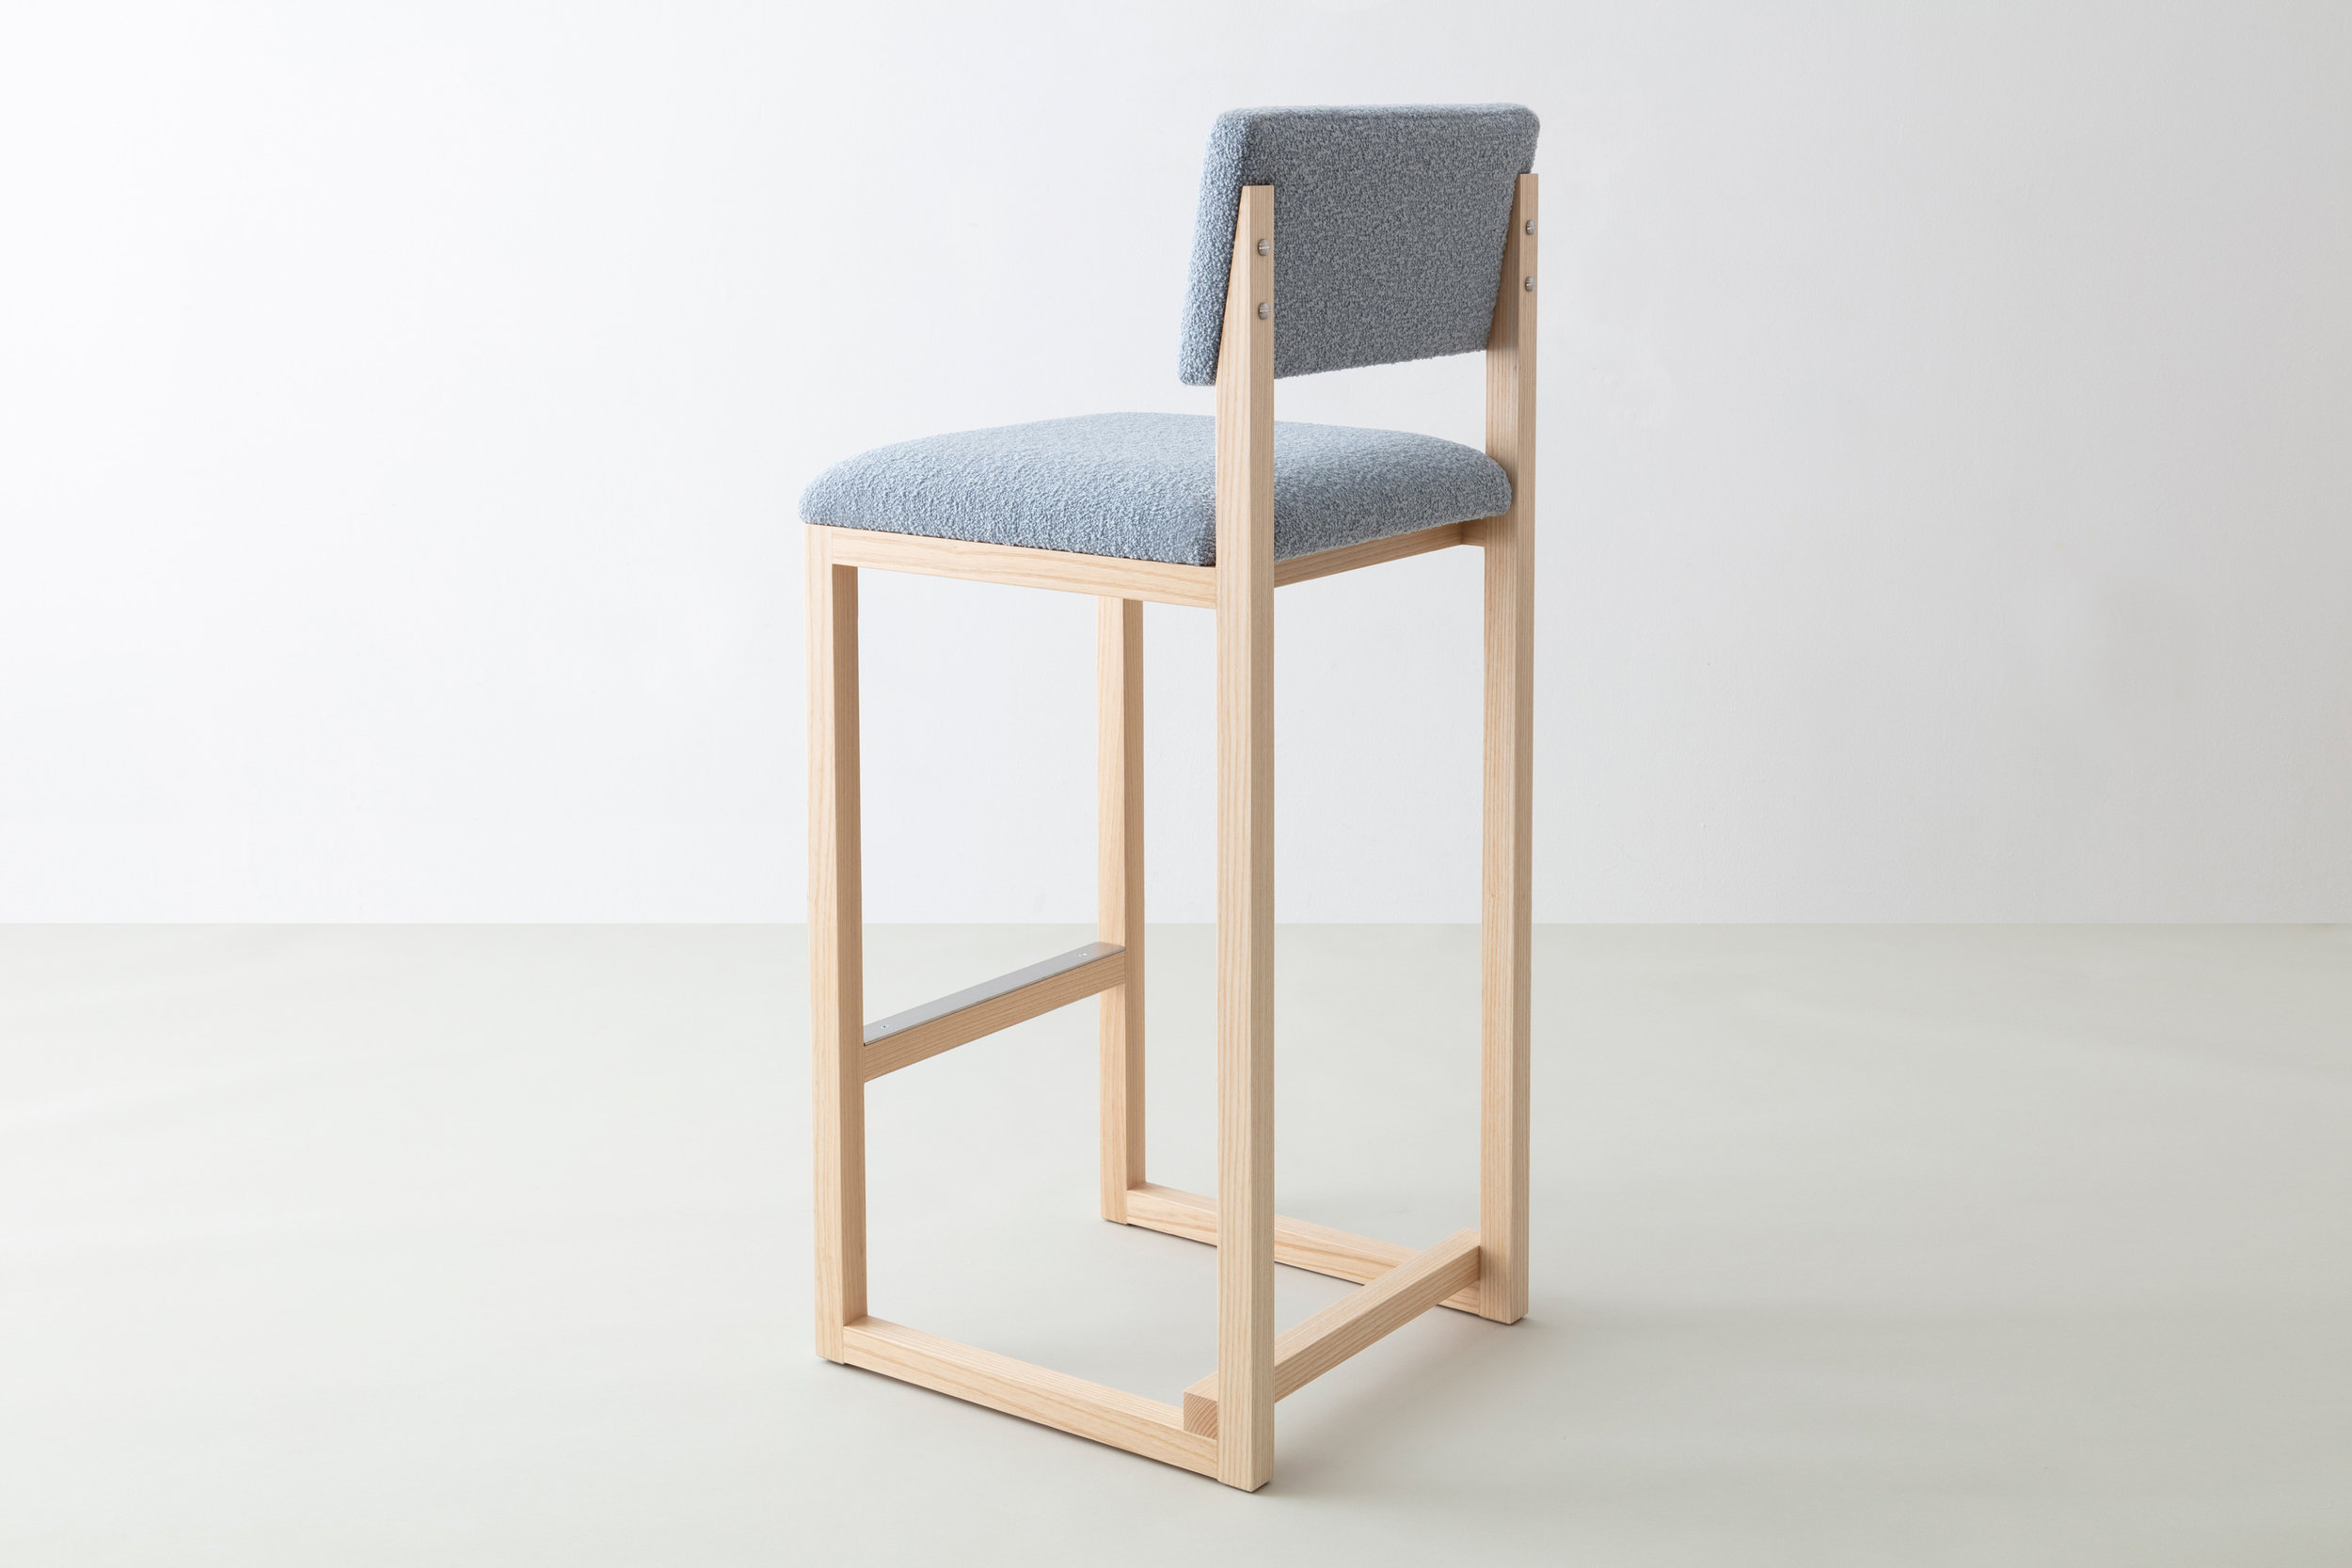 SQ Upholstered Bar Stool by David Gaynor Design